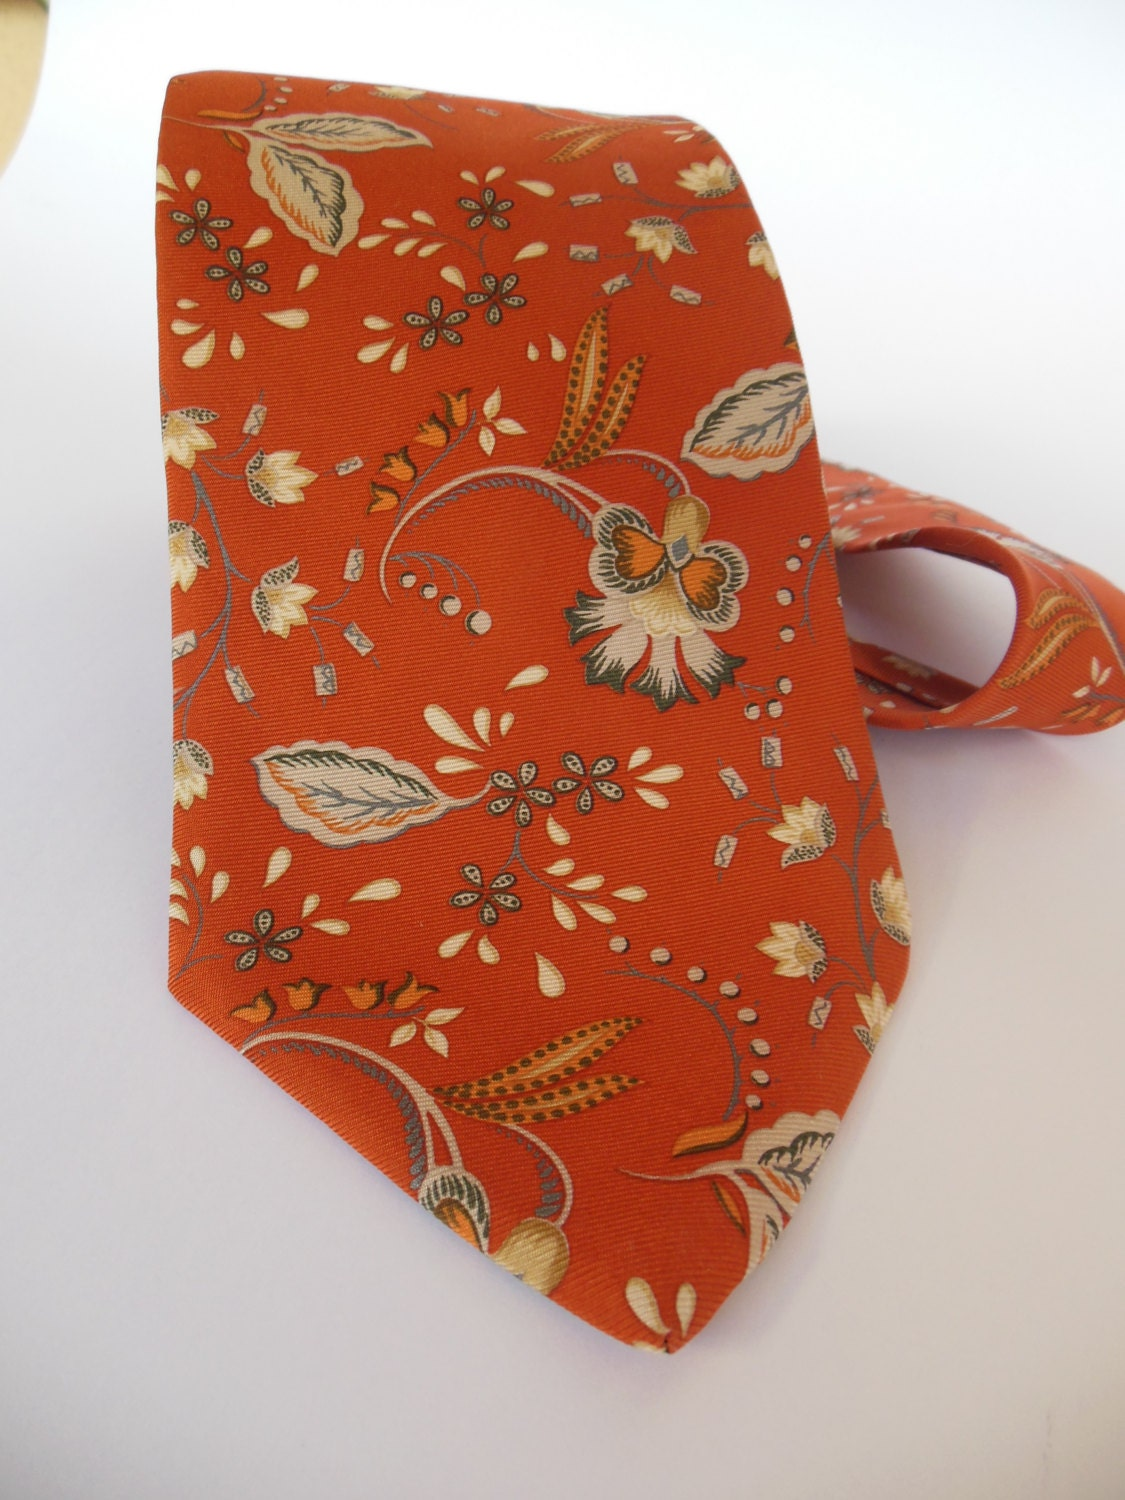 NINA RICCI Vintage Men, Neckties Mens, Retro Neckties - Limbhad